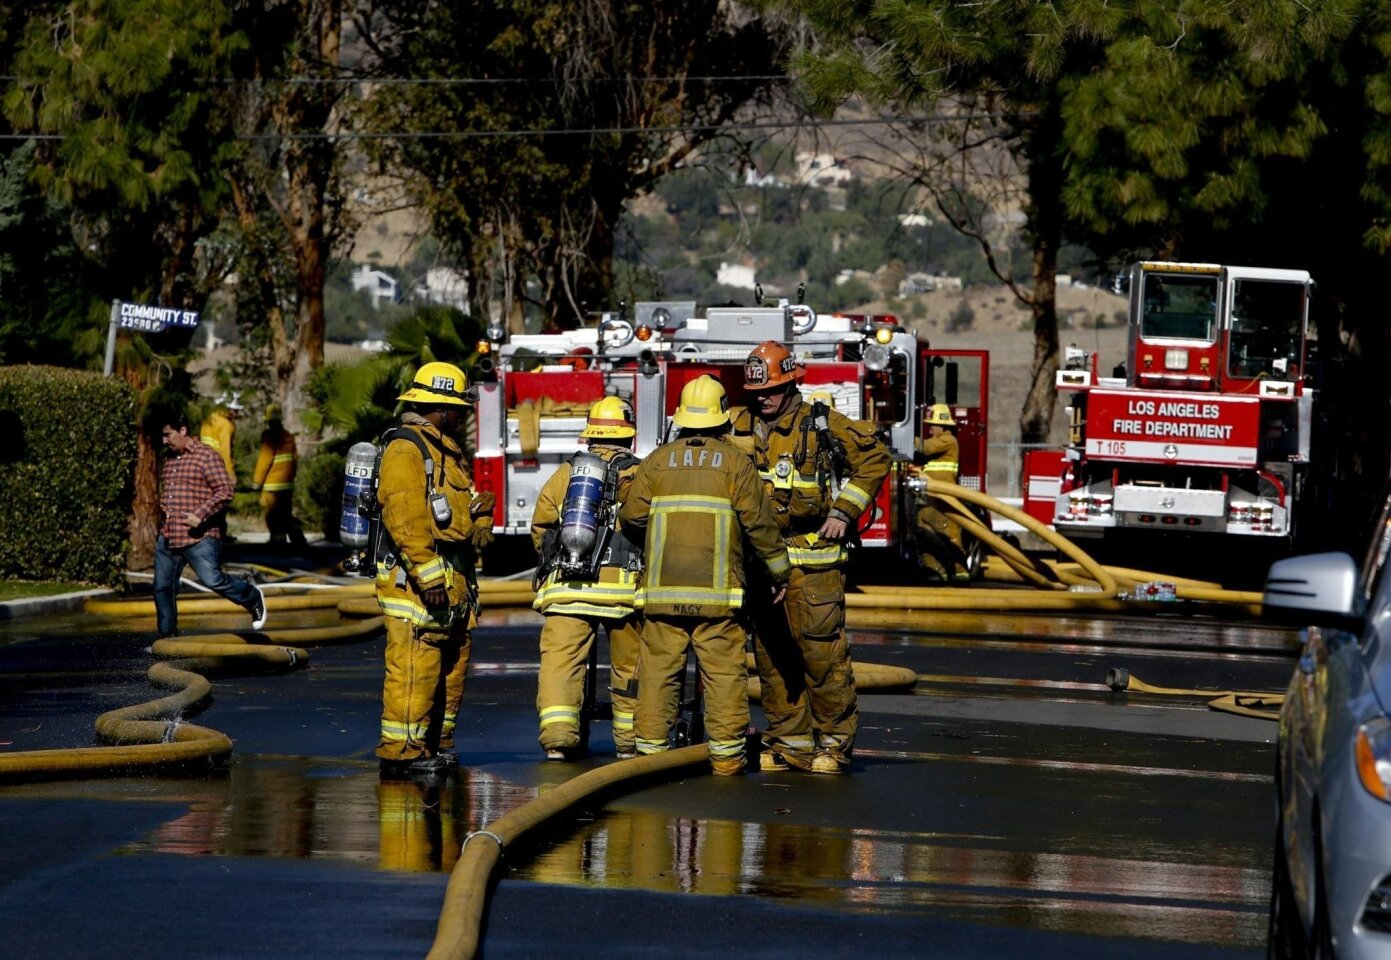 Firefighter overtime in California